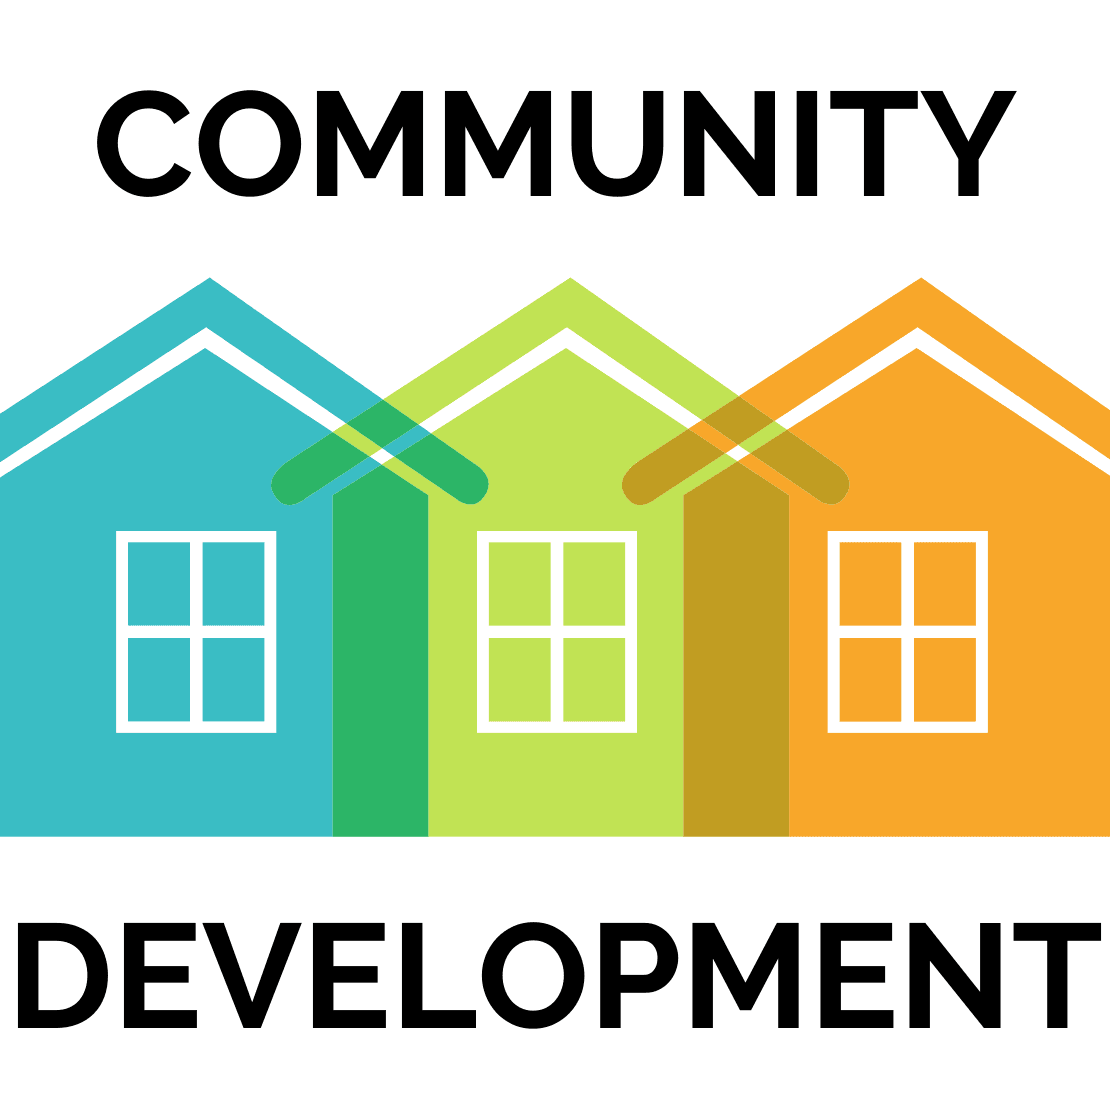 Community Development logo with 3 simple houses, colored blue, green and orange.